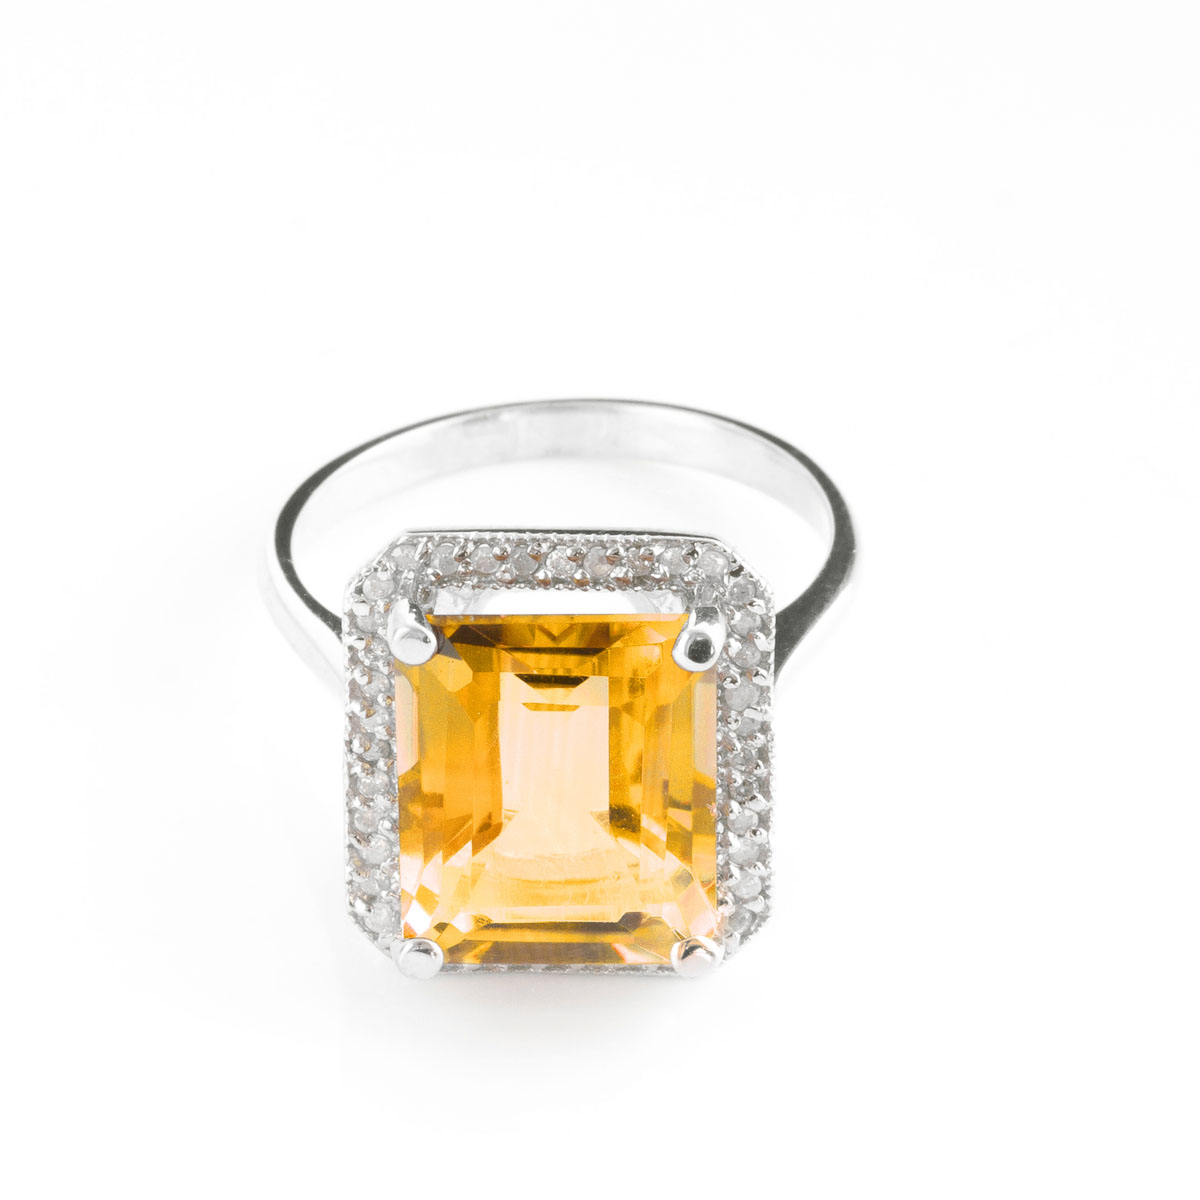 Citrine Halo Ring 5.8 ctw in 18ct White Gold